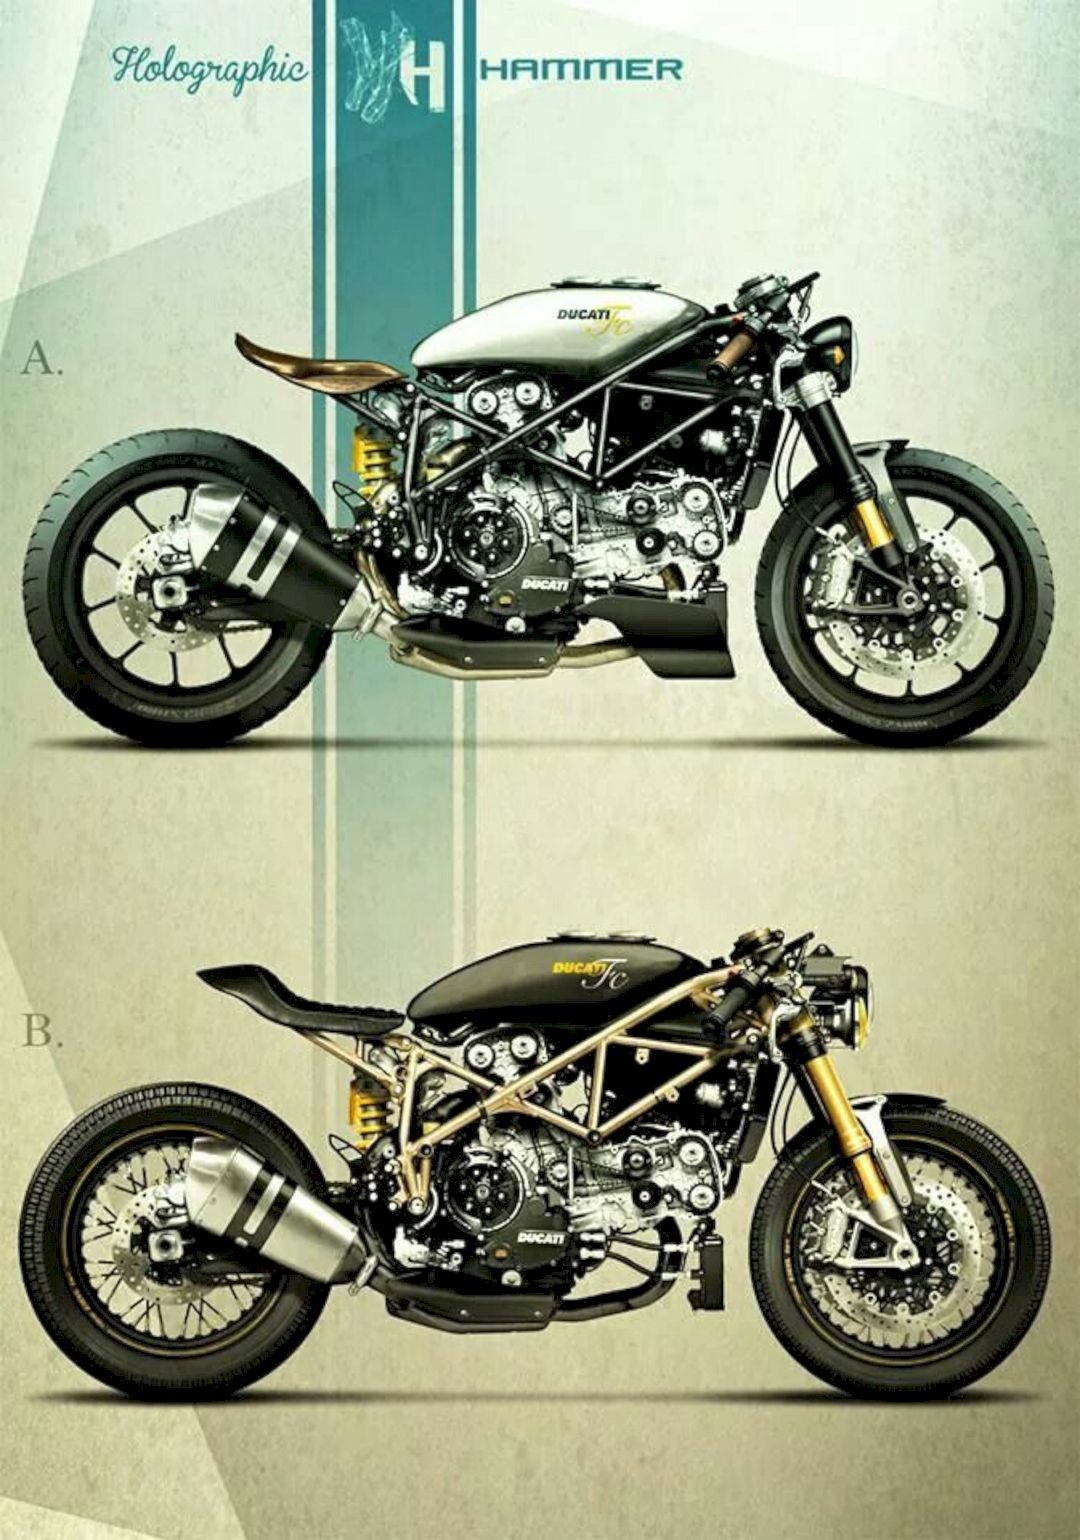 2020 Harley Davidson Low Rider S A Blacked Out Factory Custom Performance Cruiser Ducati Cafe Racer Ducati Motorcycles Cafe Racer Bikes